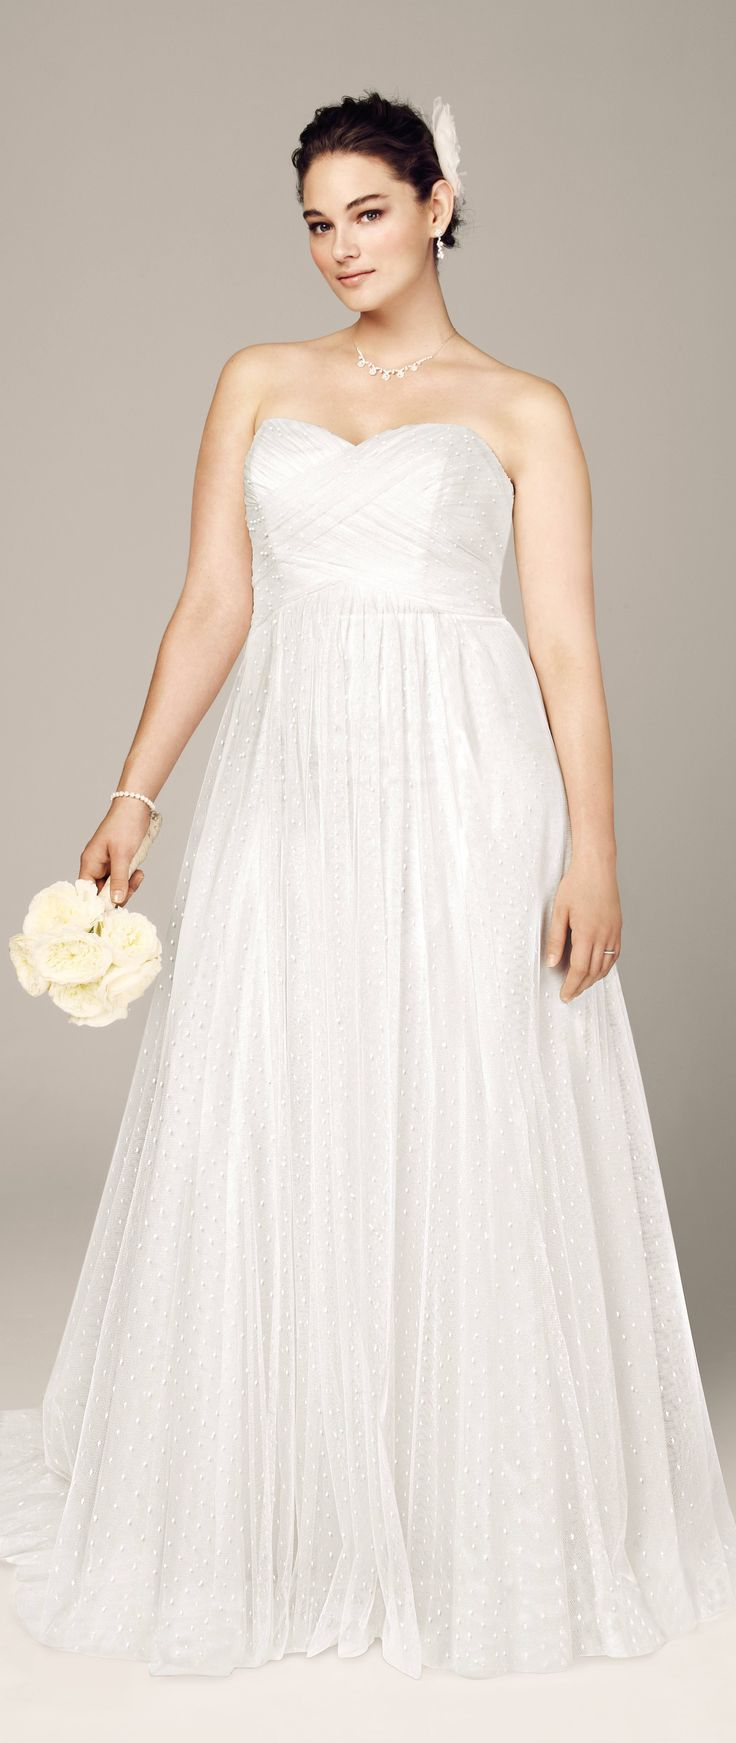 Got a big tum? Wanna get married someday? Don't know what to wear? Here's a good wedding dress from David's Bridal.... and..... here are some great tips to help you find the right dress: http://www.boomerinas.com/2014/10/08/wedding-dresses-for-your-body-type-apple-shapes-plus-size-tummies/